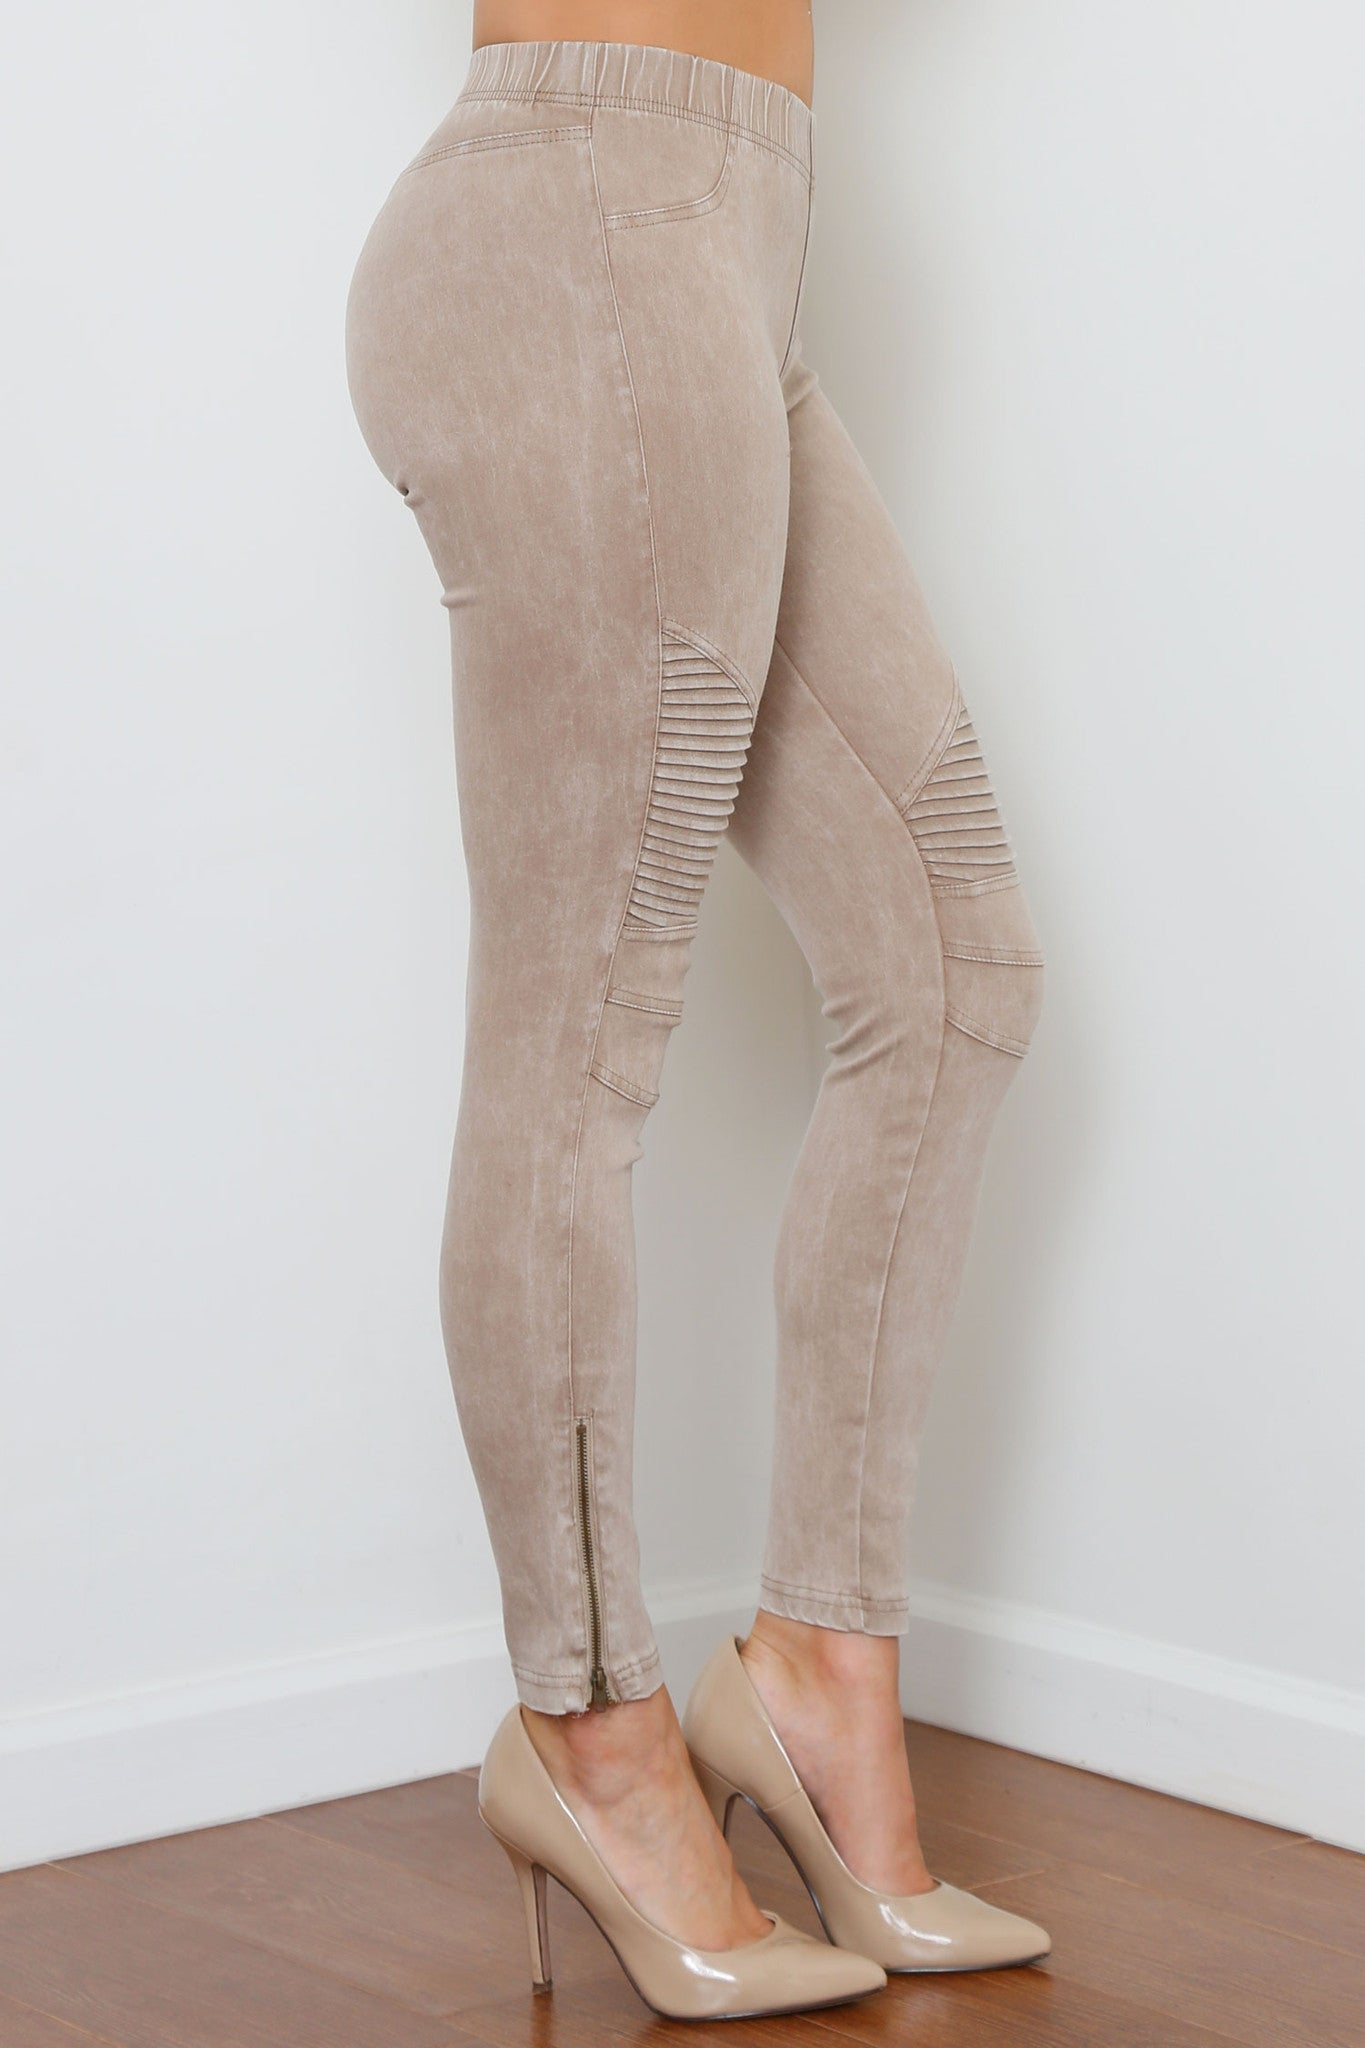 JADE LEGGINGS - Glam Envy - 2